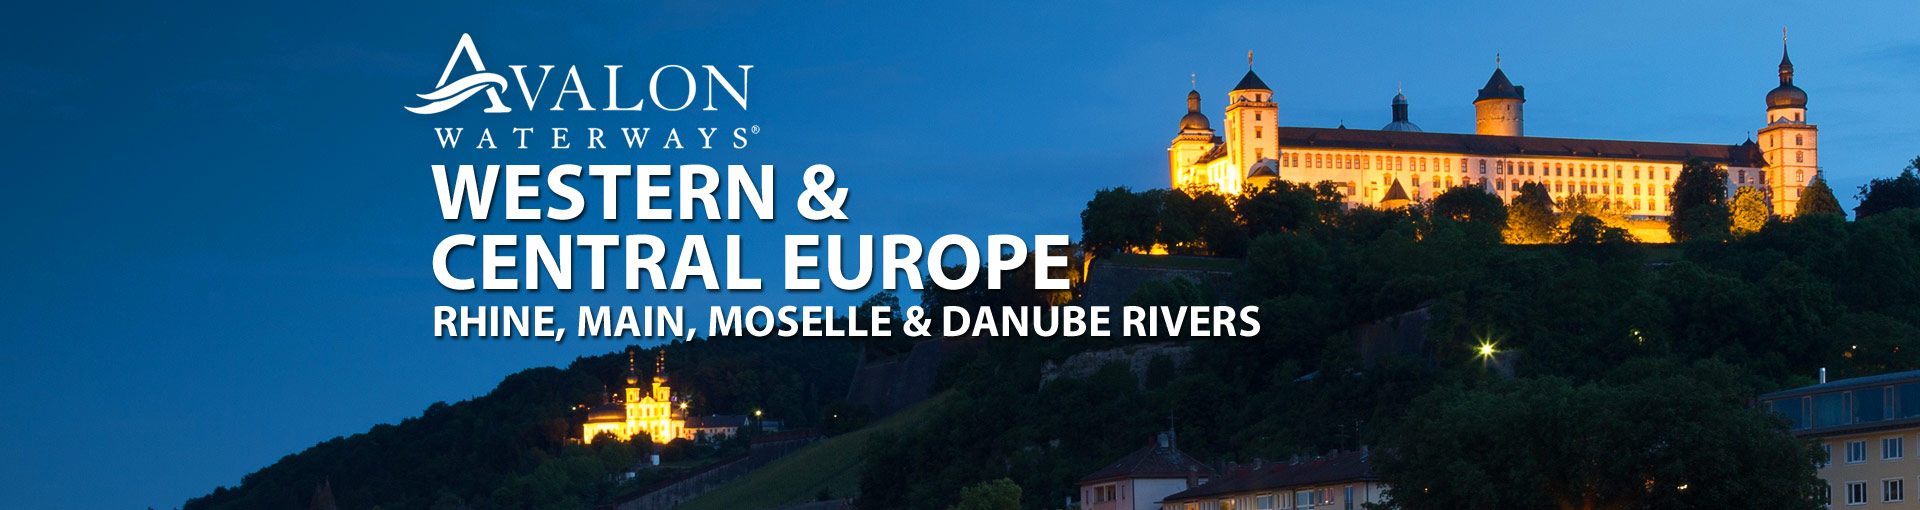 Avalon Waterways River Cruises to Western and Central Europe